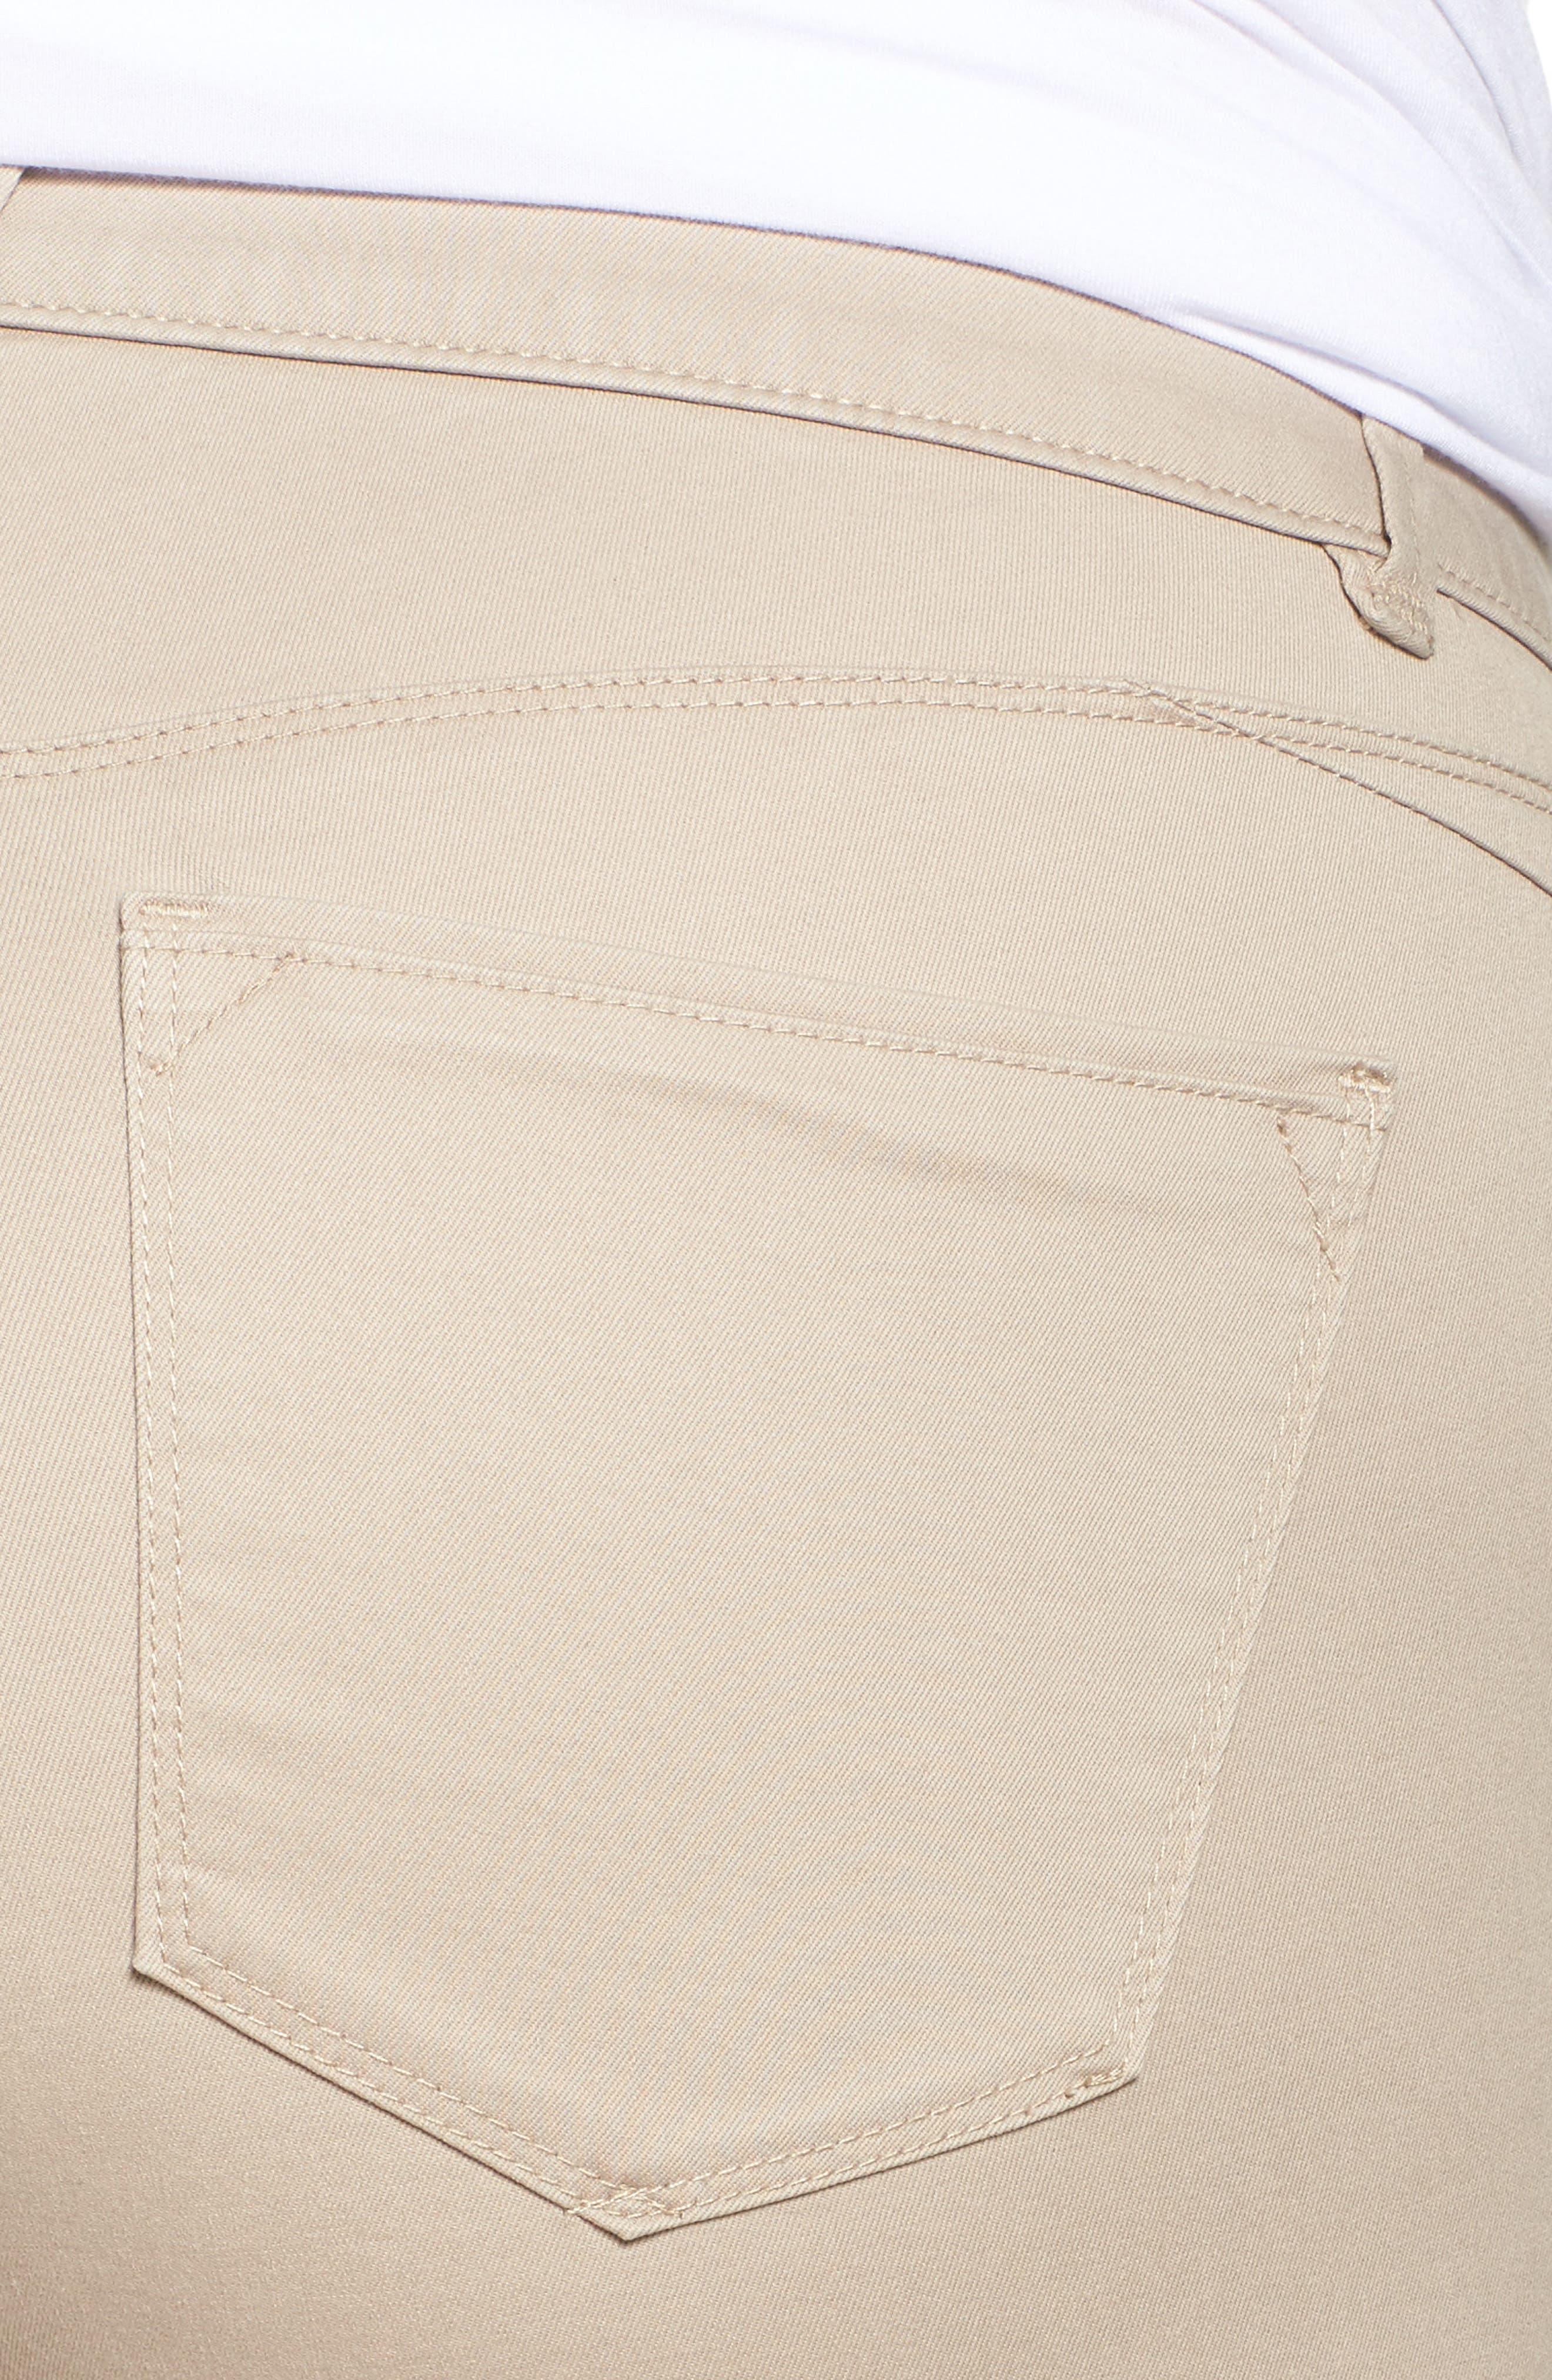 Ab-solution Ankle Pants,                             Alternate thumbnail 4, color,                             Flax